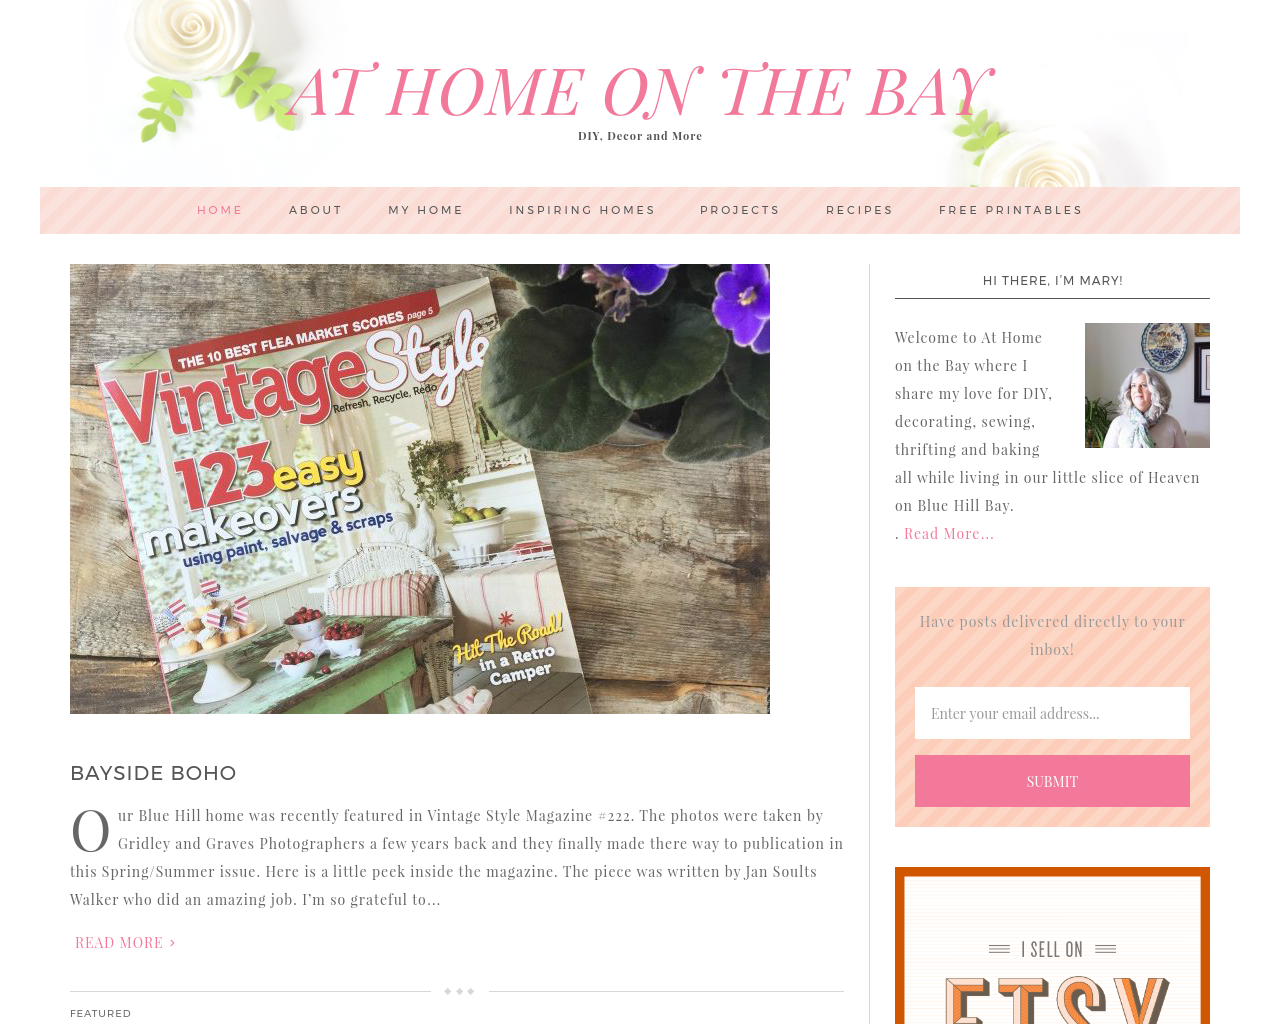 At-Home-On-The-Bay-Advertising-Reviews-Pricing